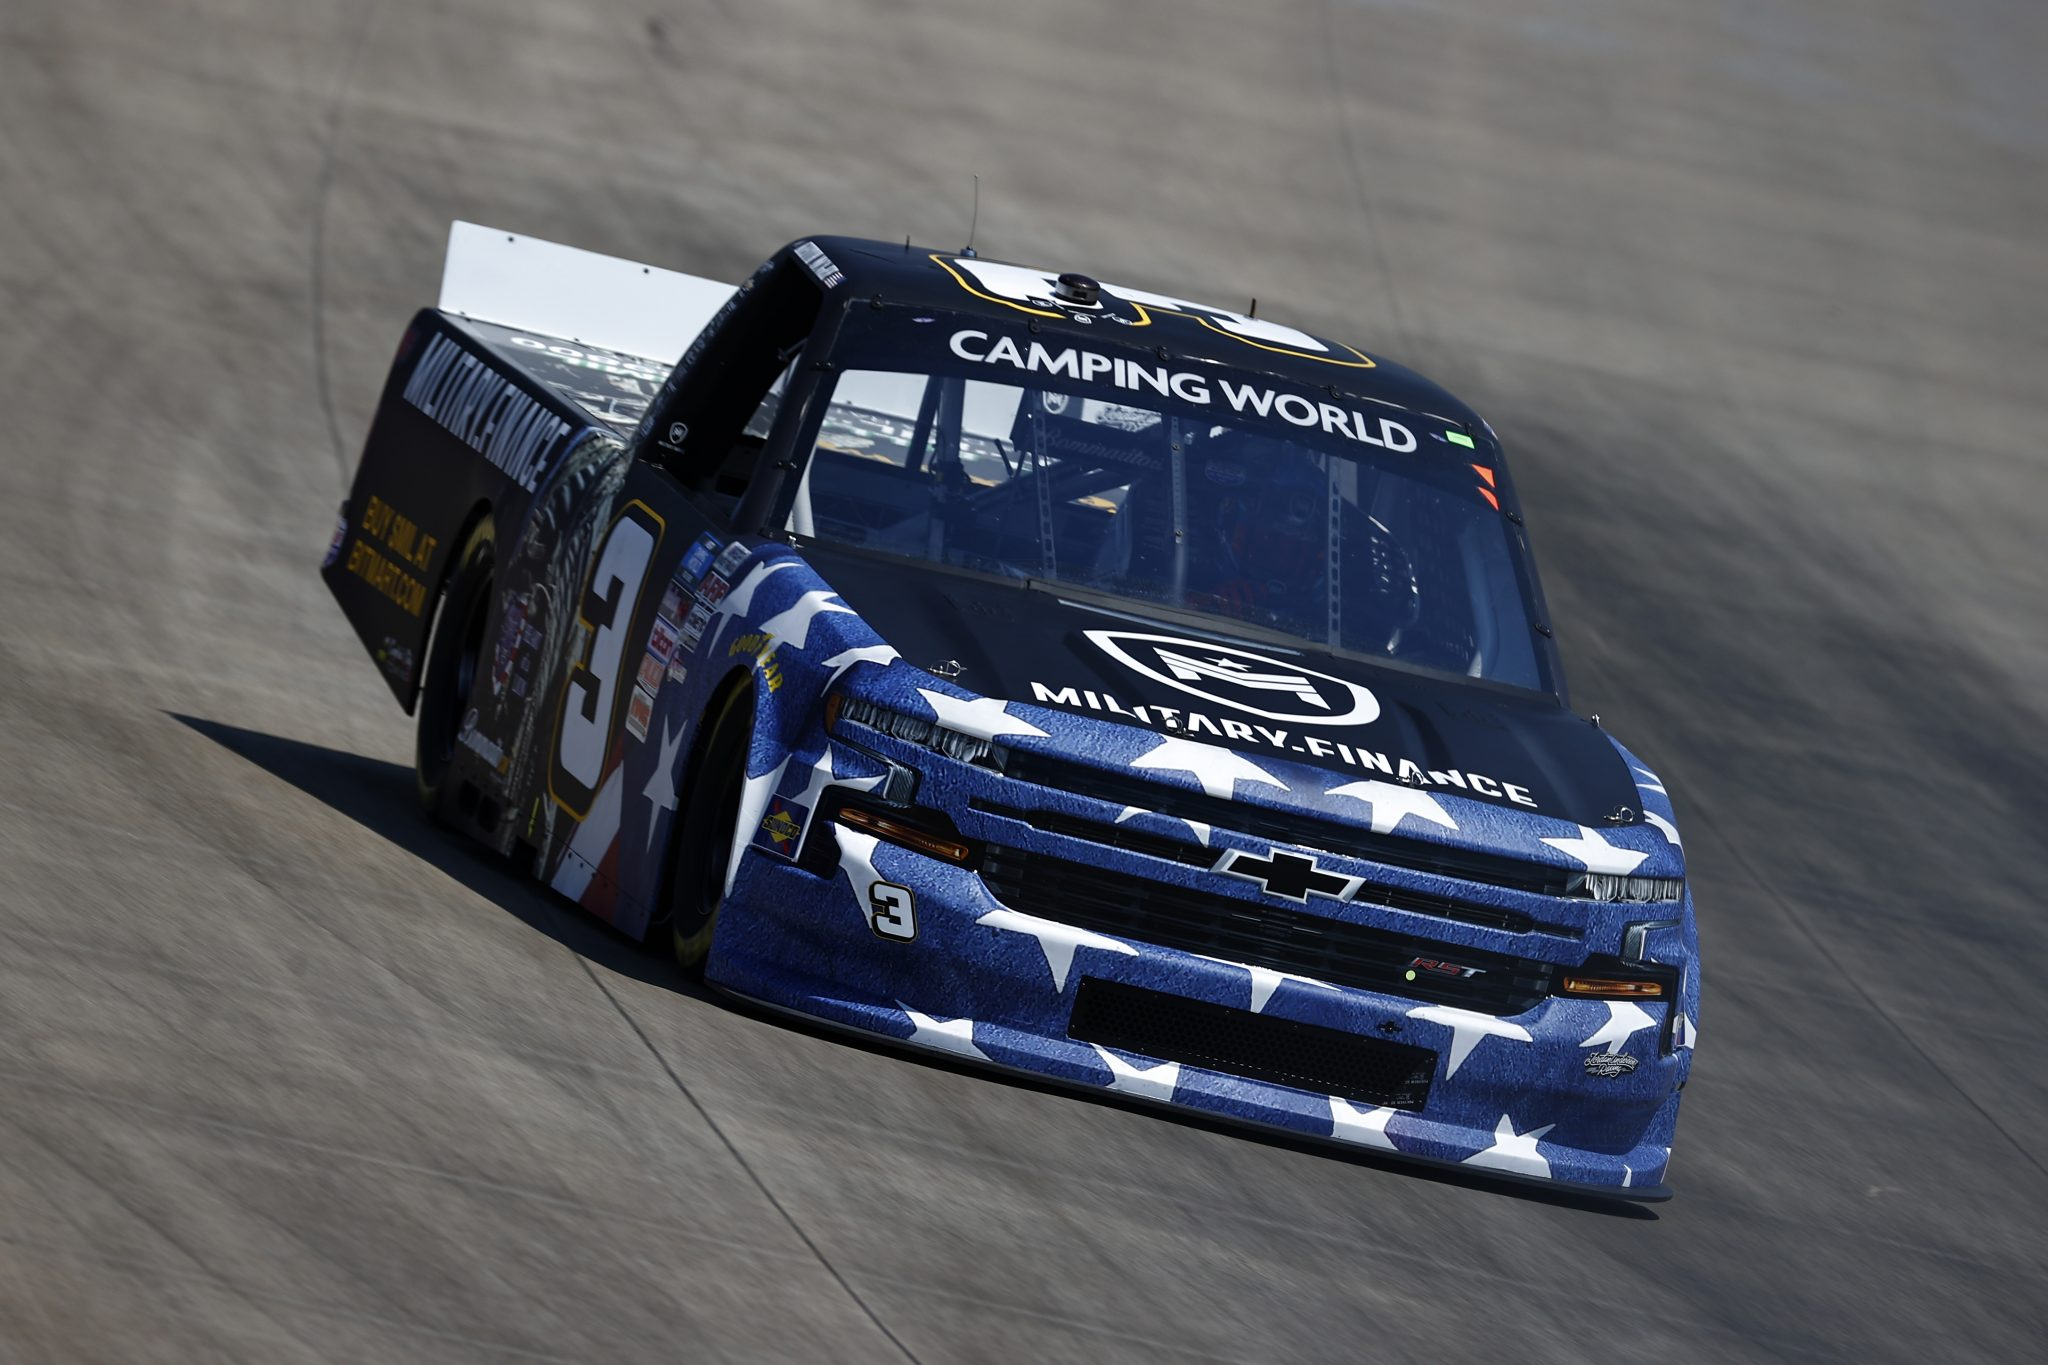 LEBANON, TENNESSEE - JUNE 18: Keith Mcgee, driver of the #3 Military Finance Chevrolet, drives during practice for the NASCAR Camping World Truck Series Rackley Roofing 200 at Nashville Superspeedway on June 18, 2021 in Lebanon, Tennessee. (Photo by Jared C. Tilton/Getty Images) | Getty Images